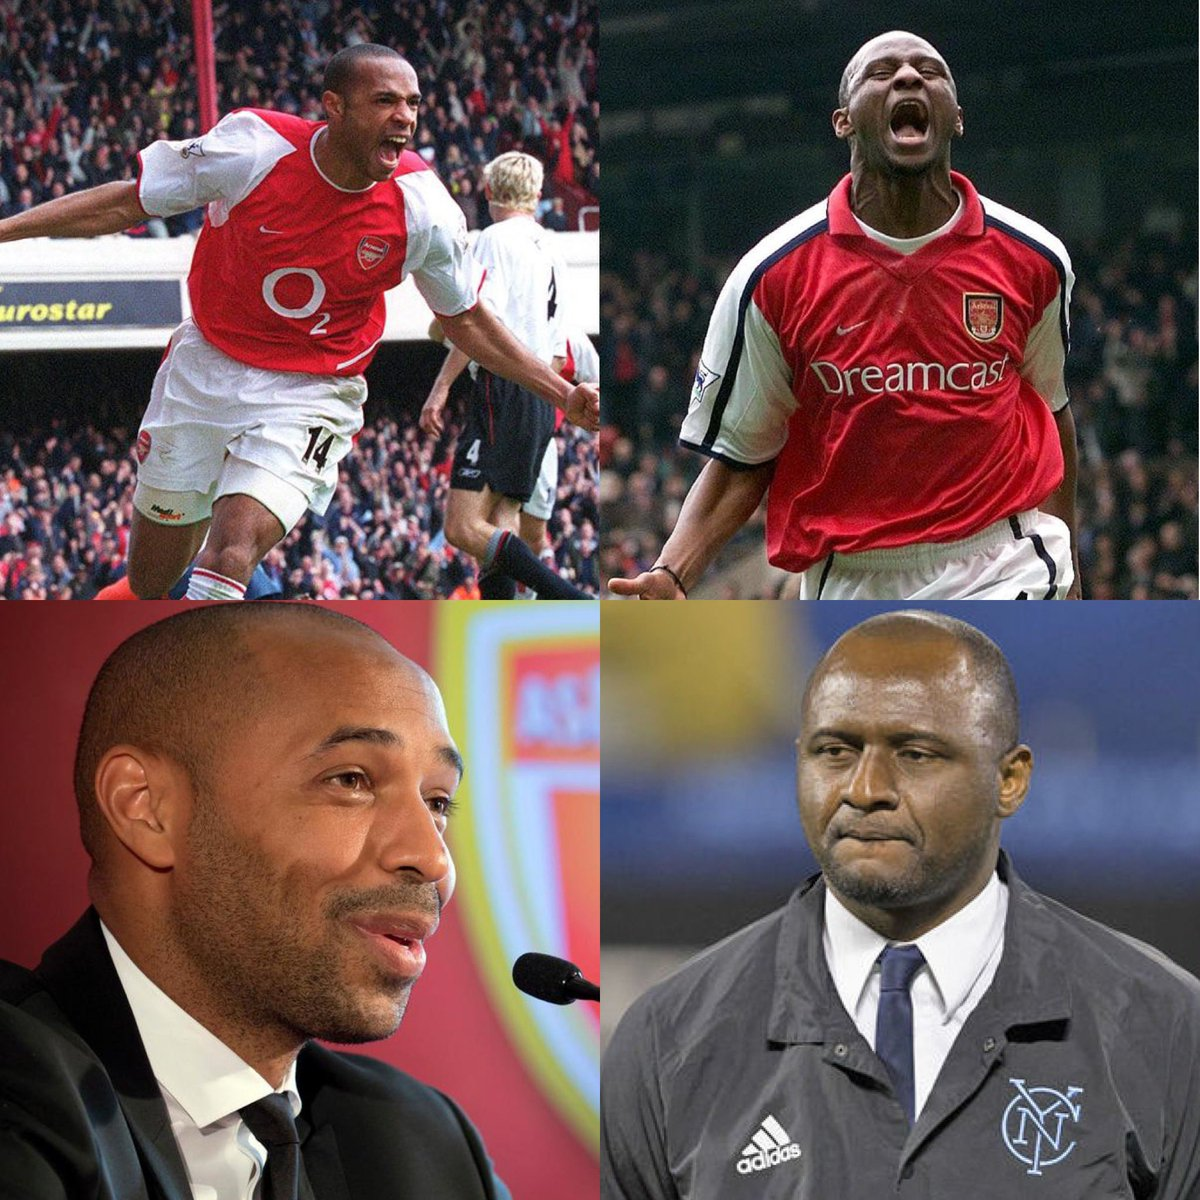 Tonight: @AS_Monaco vs @ogcnice @ThierryHenry vs @OfficialVieira 💥 Old friends become rivals 💥